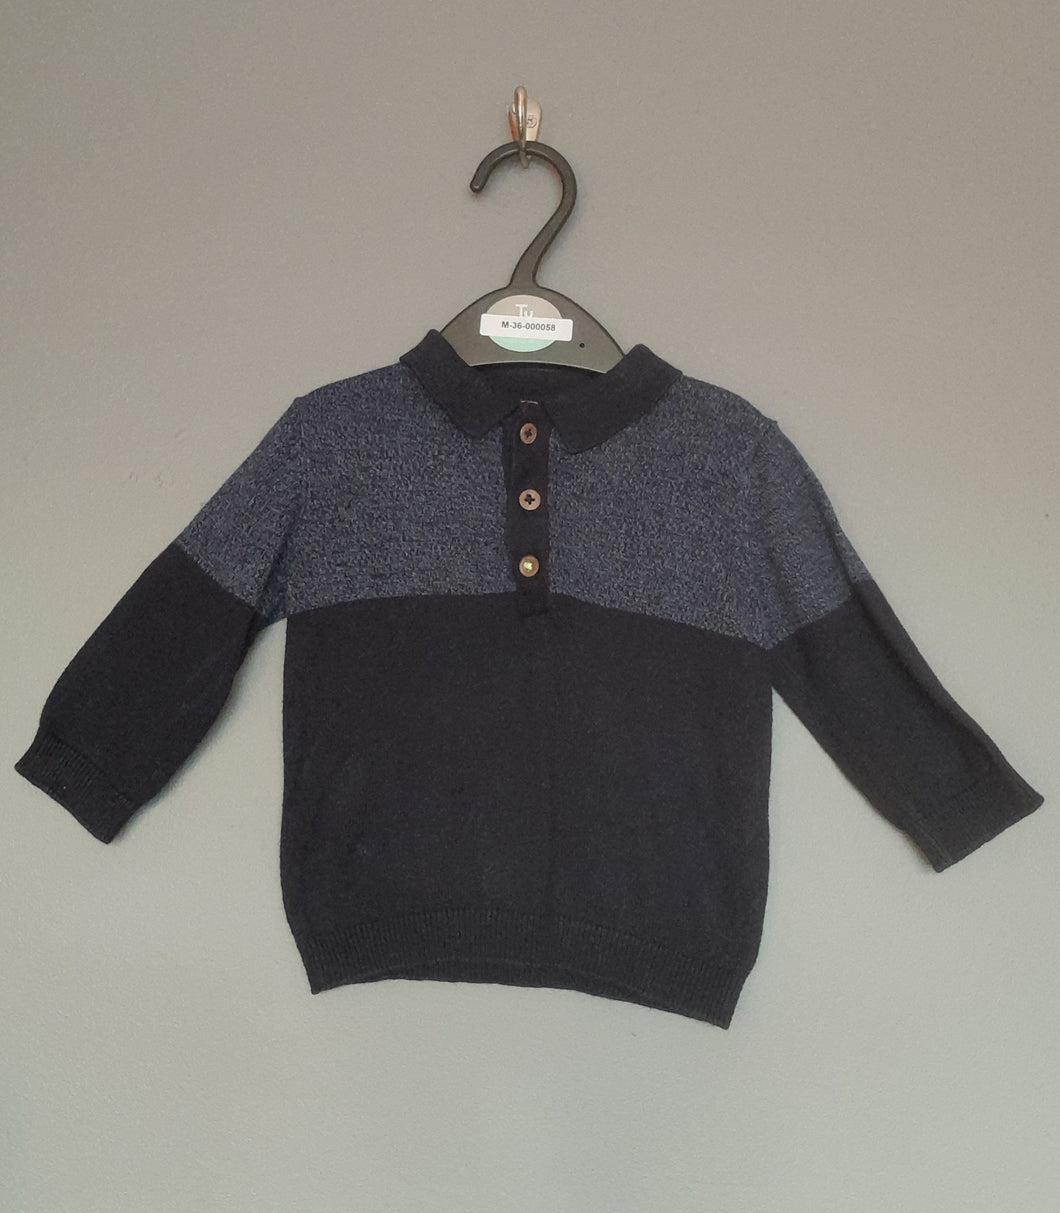 3-6 months Navy Jumper - Next